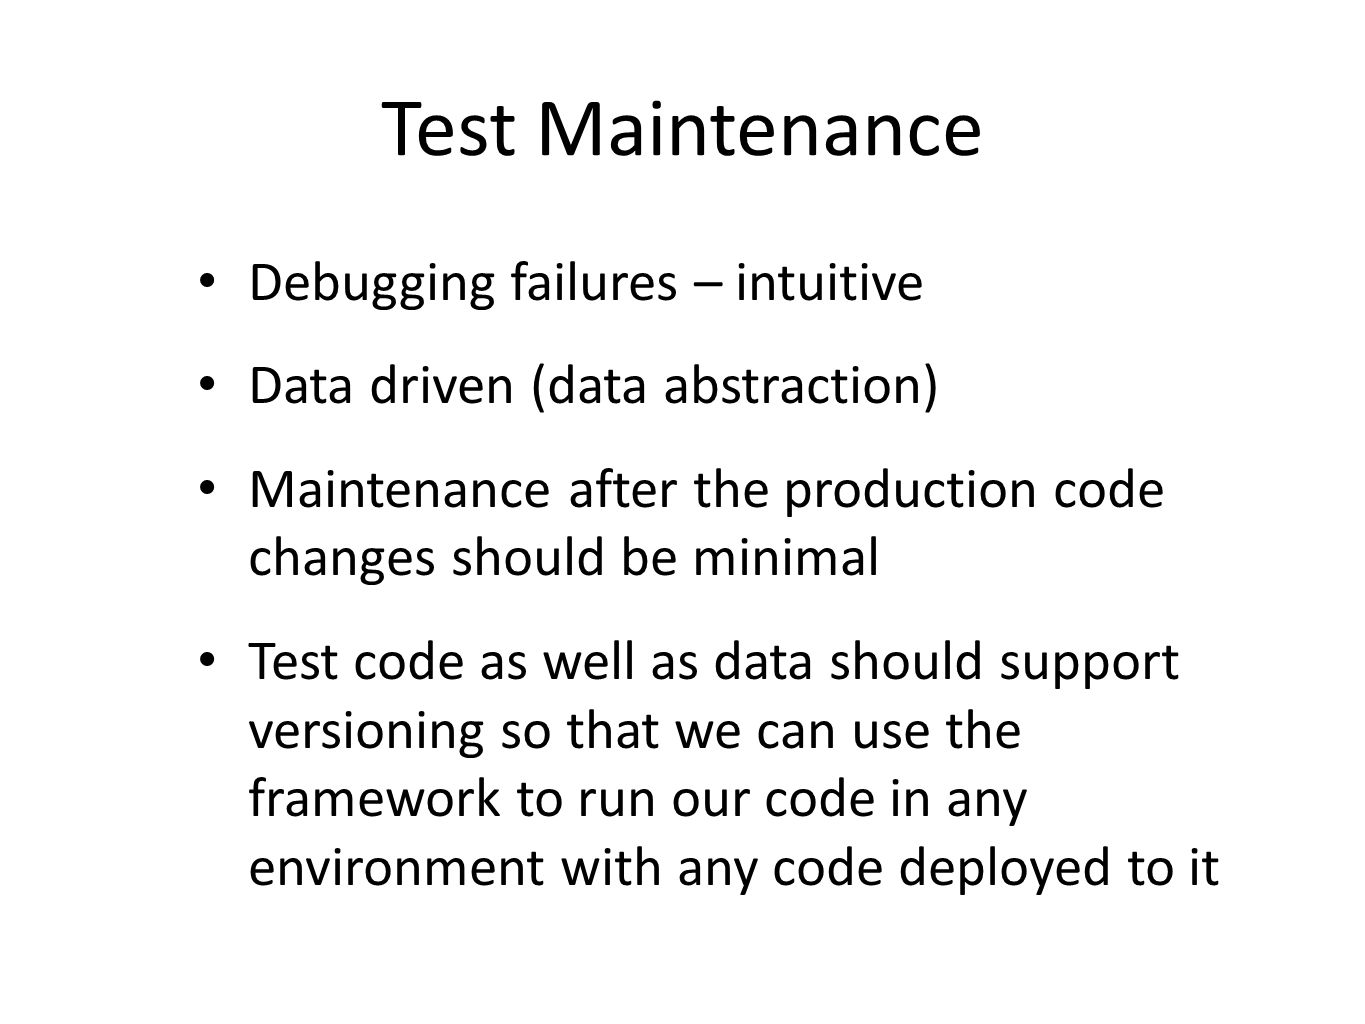 Test Execution Performance Scheduling Parallel Execution Scalability, easy to add capacity by adding more and/or better machines Ease of using and setting this up in production